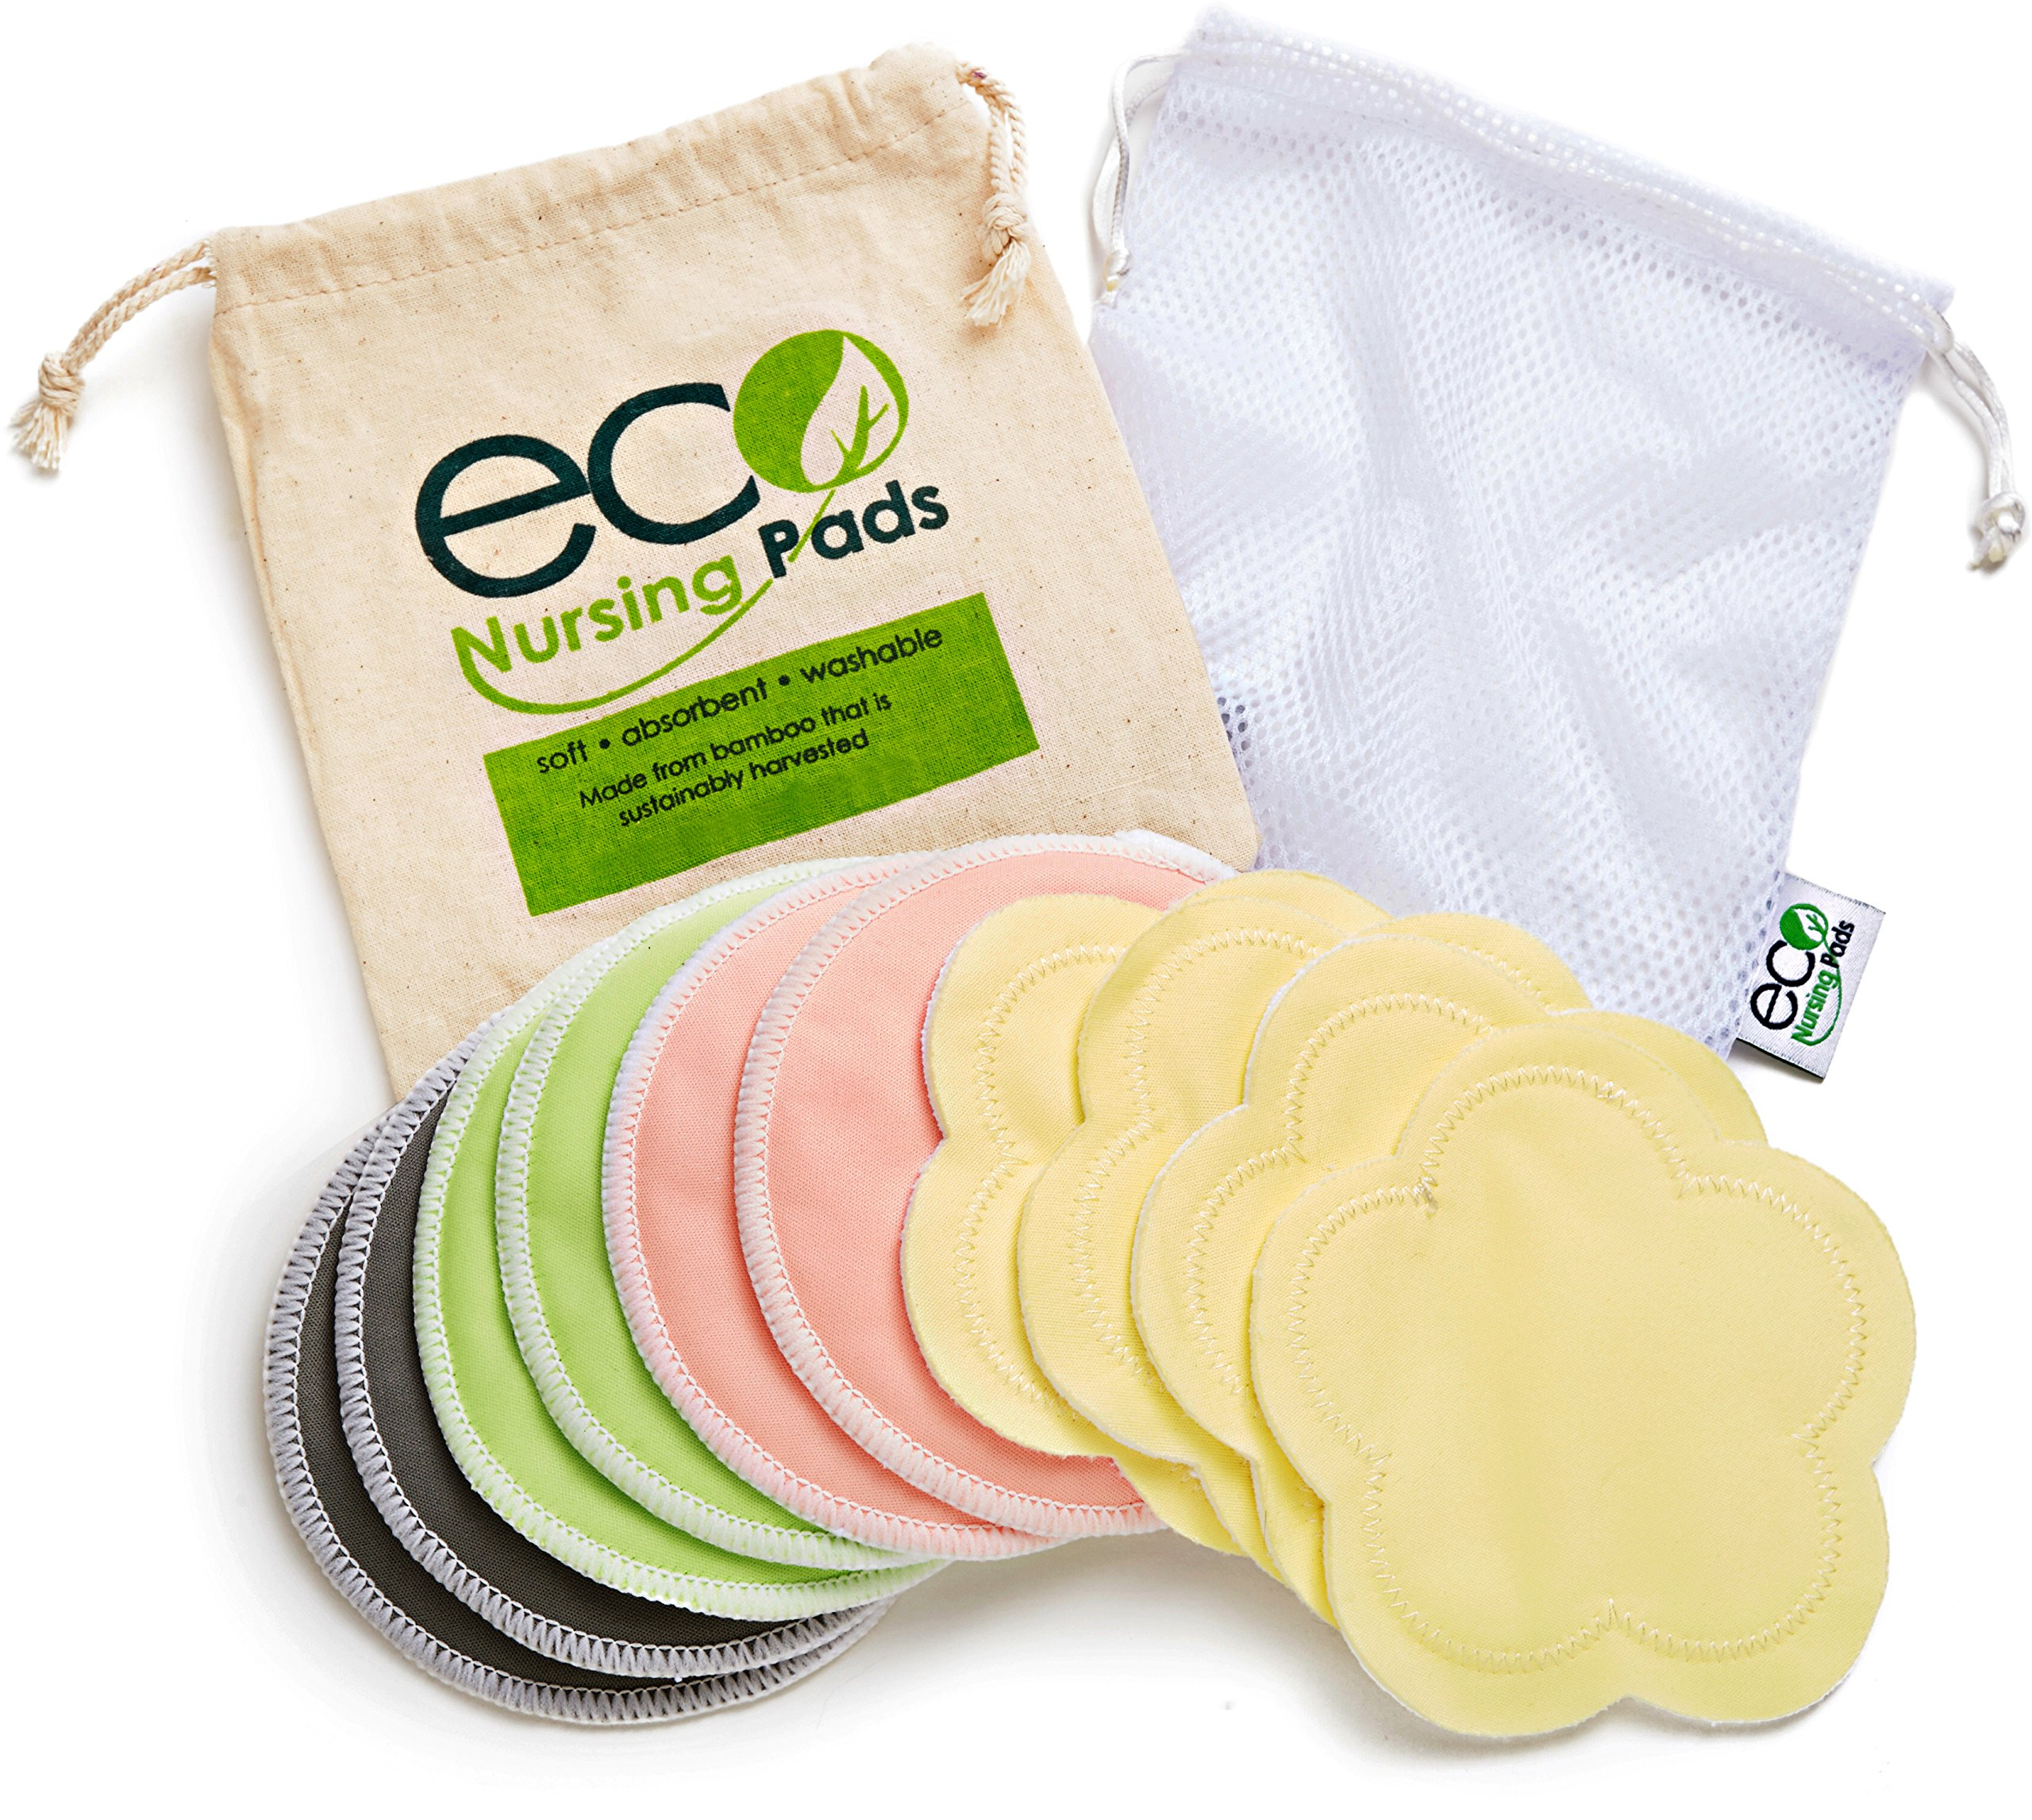 Washable Reusable Bamboo Nursing Pads | Organic Bamboo Round Breastfeeding Pads, Ultra-Soft Velvet Flower Pads | 10 Pack with 2 BONUS Pouches & FREE E-Book by EcoNursingPads | Perfect Baby Shower Gift by EcoNursingPads